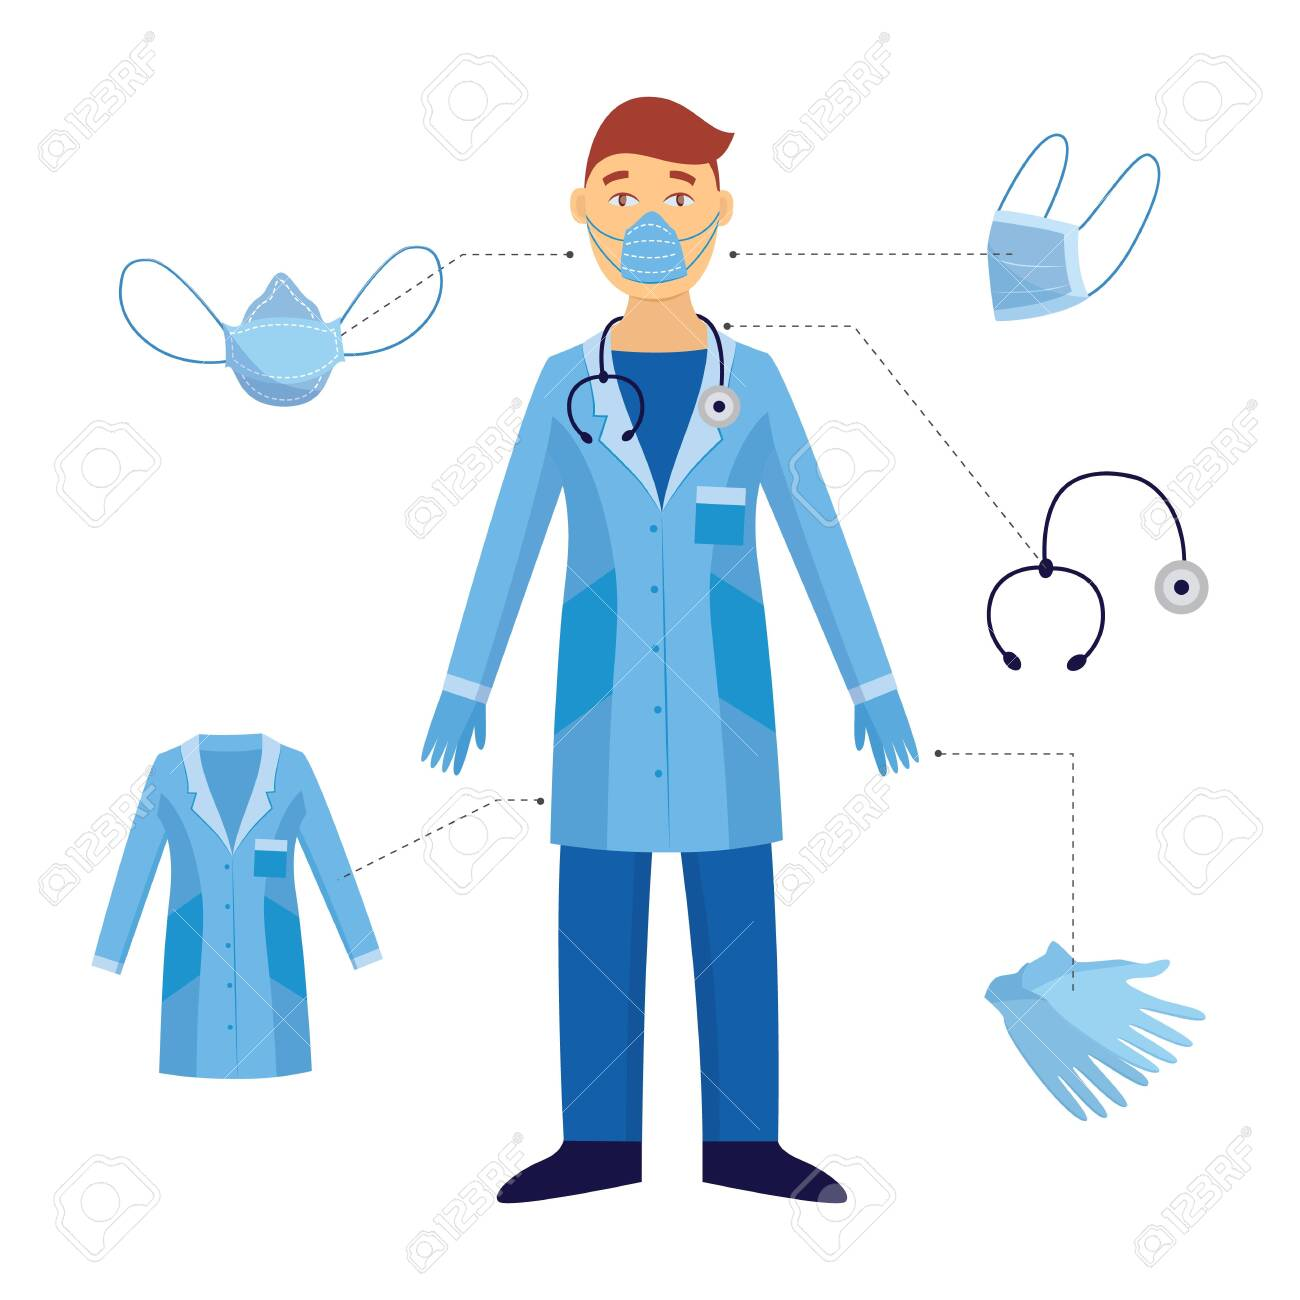 A man and a doctor and his medical safety equipment. Industrial safety and protection with a mask and stethoscope, gloves in a blue doctor form against biological hazards. Vector flat illustration. - 124419713